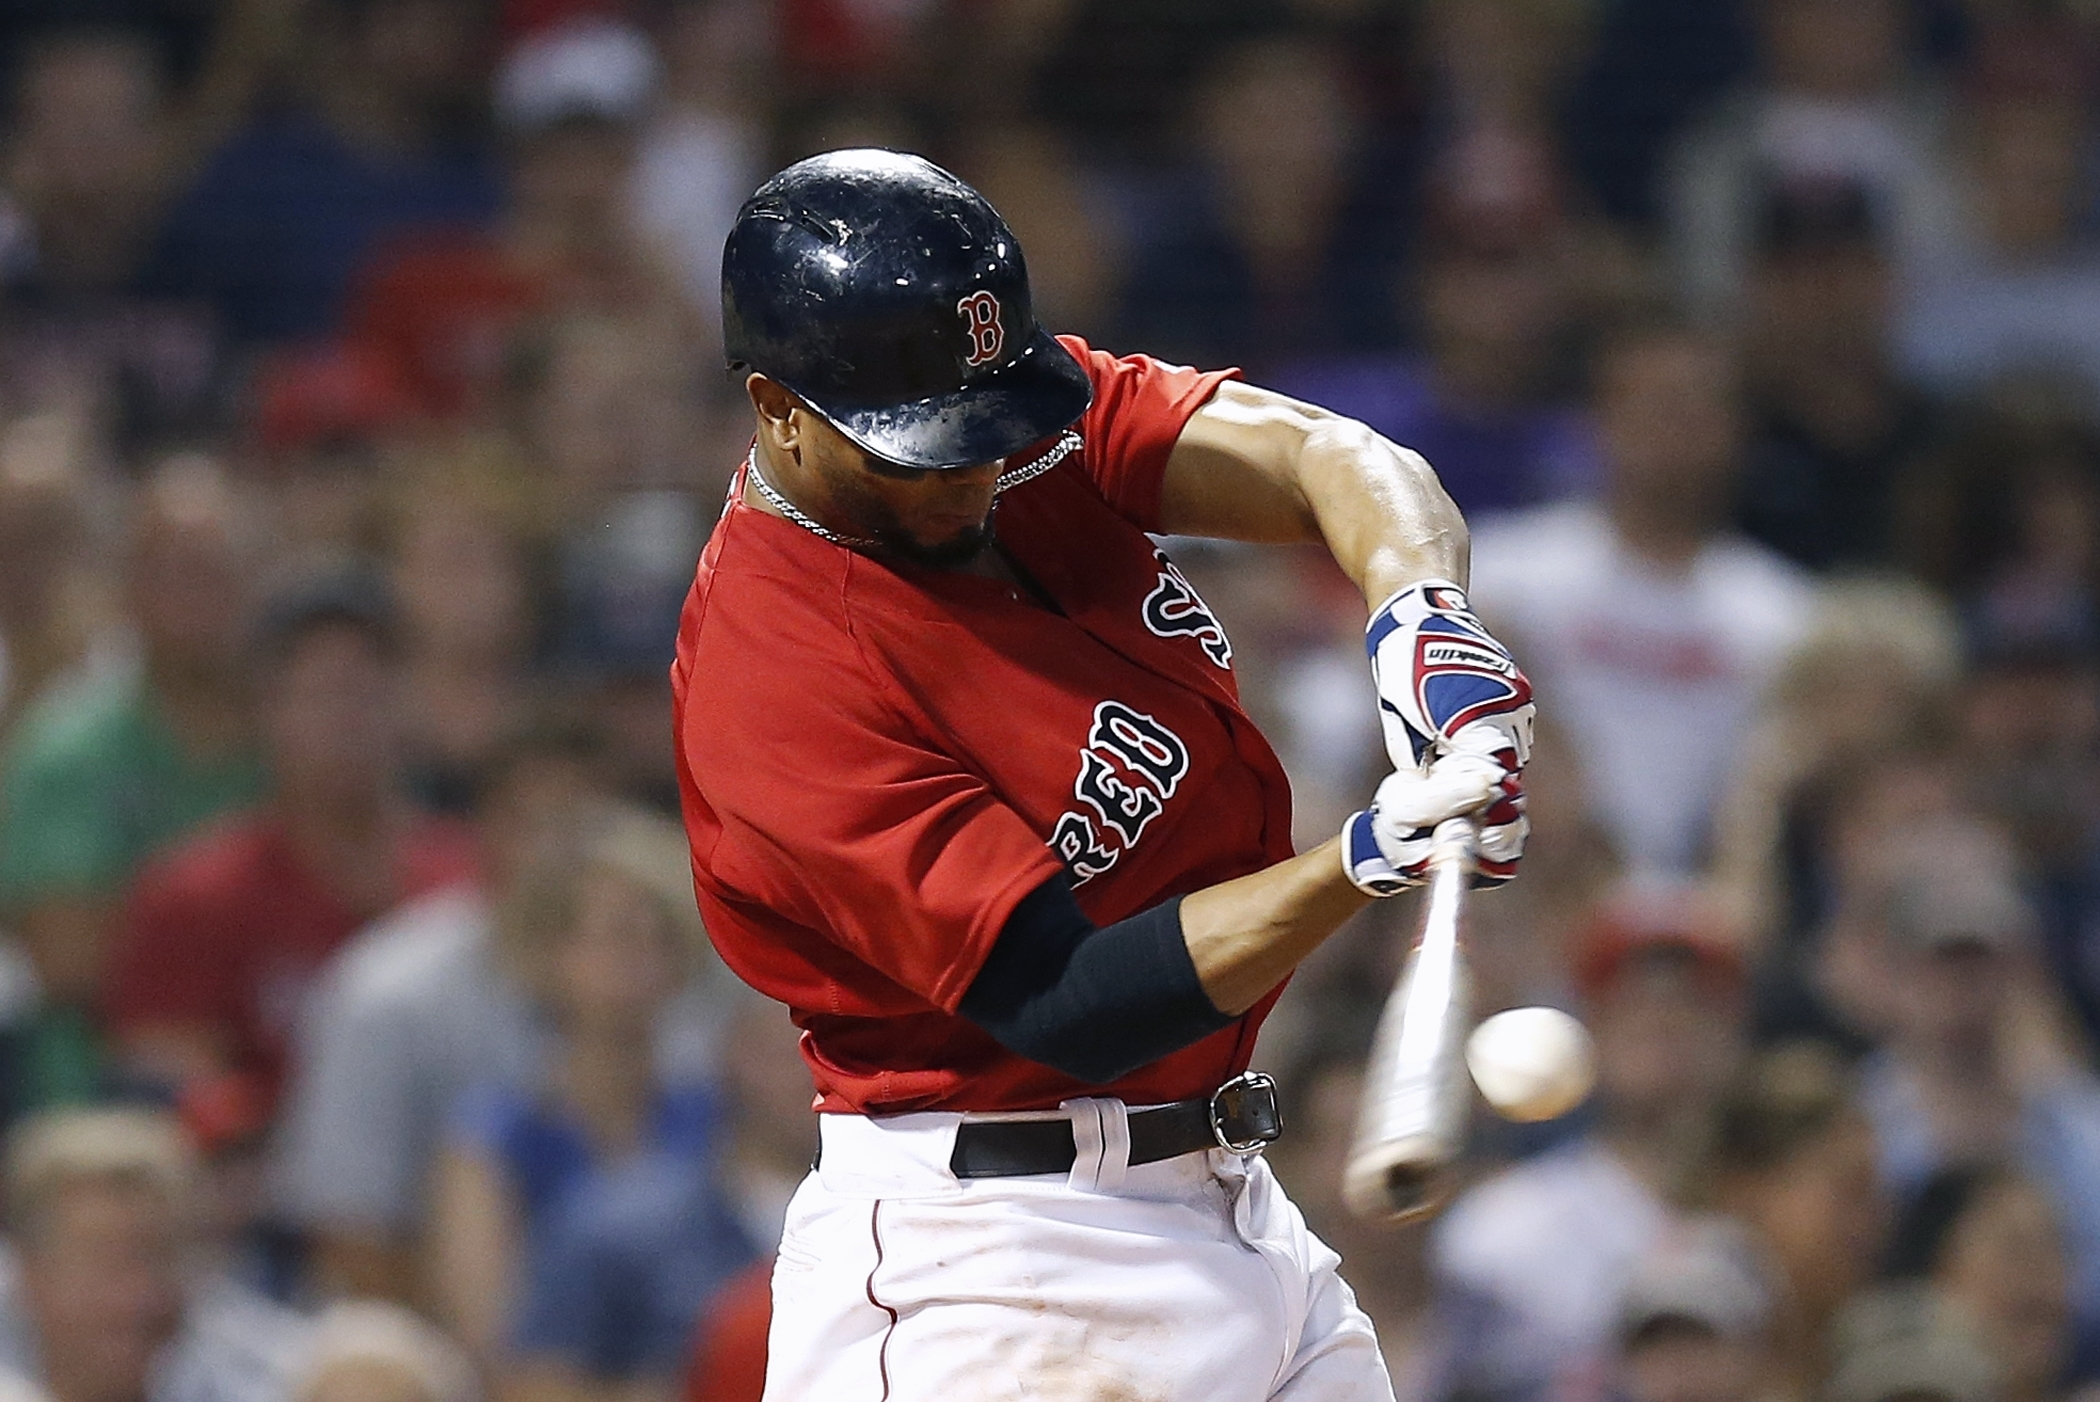 Bogaerts rallies Red Sox to 7-3 win over Rays